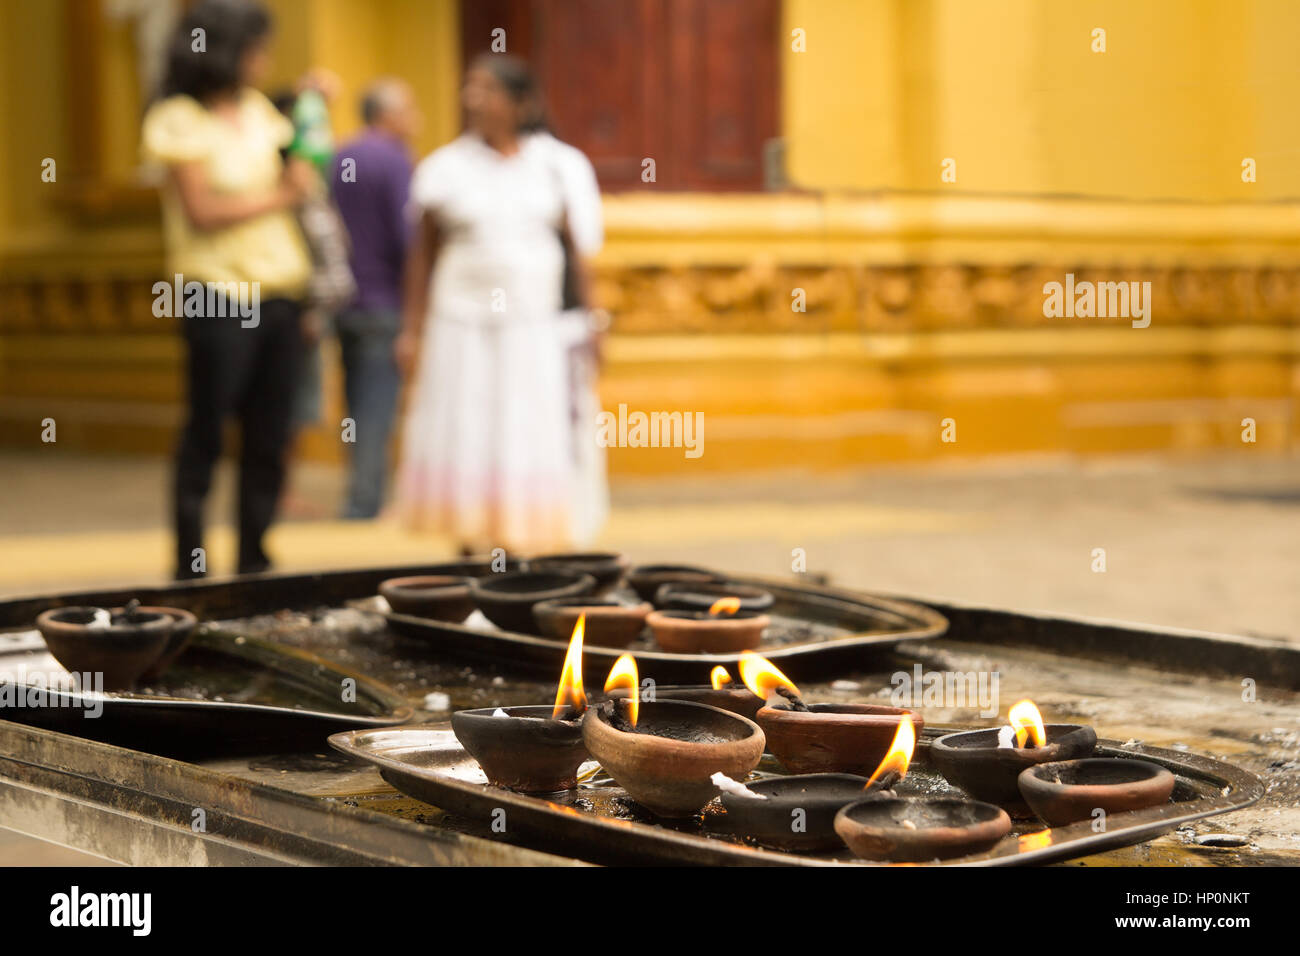 clay oil lamps in hinduist temple - Stock Image